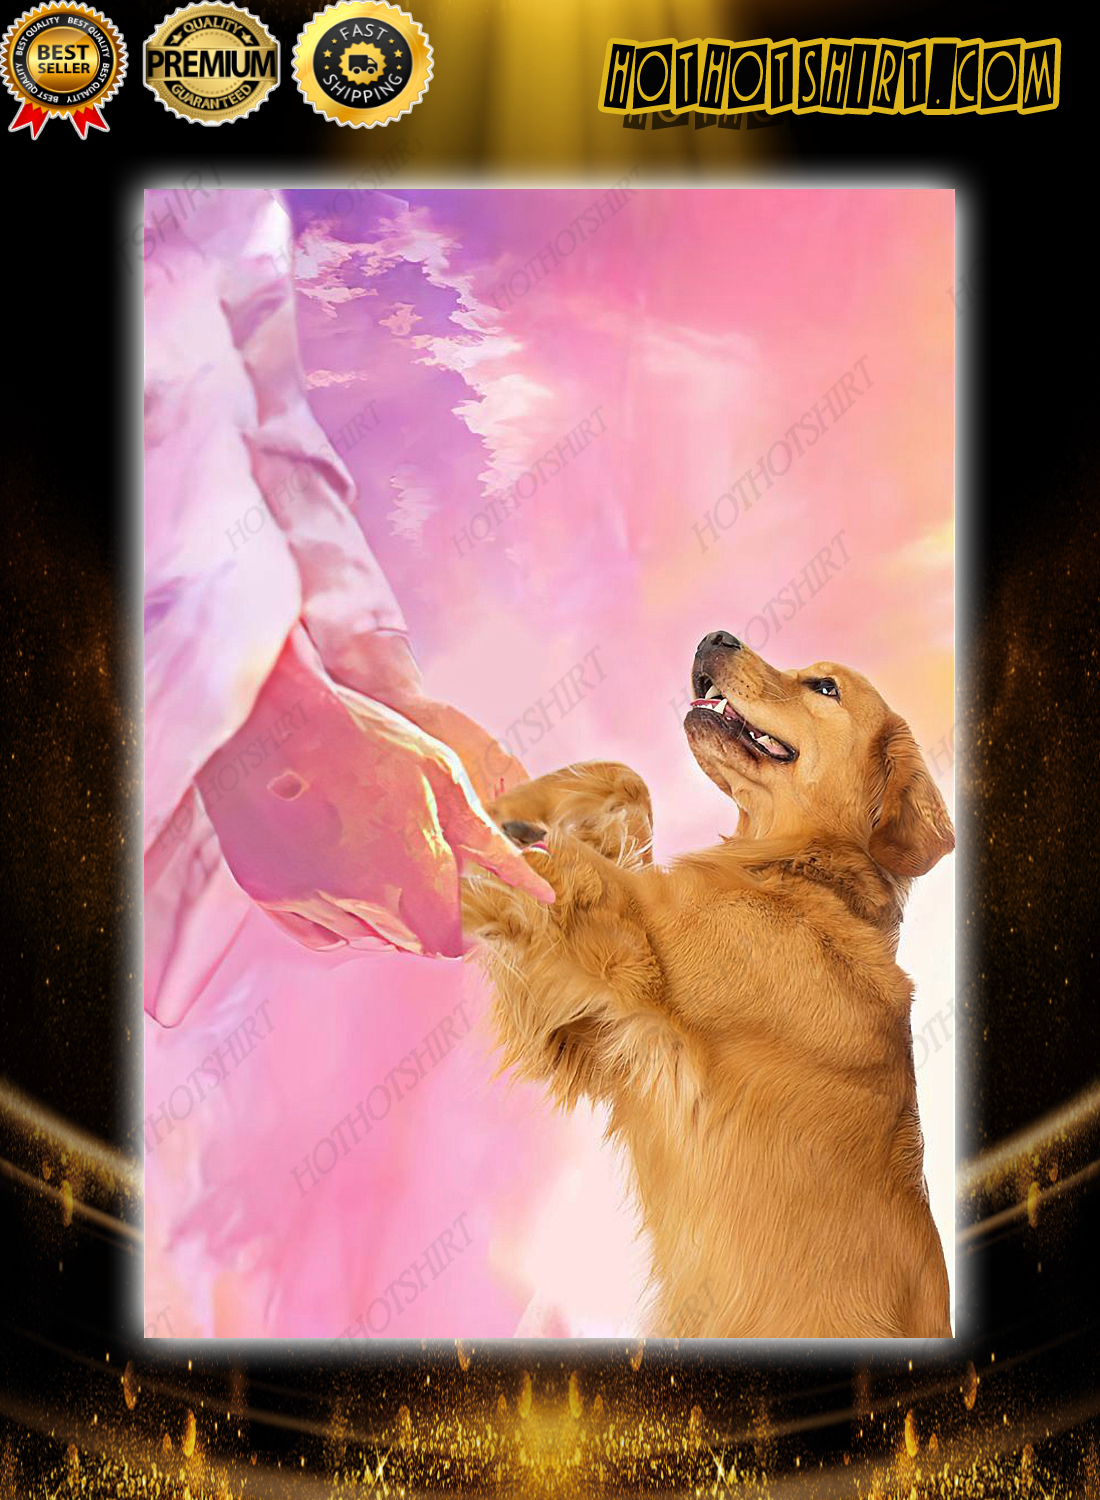 Jesus and golden retriever to the beautiful world poster 3